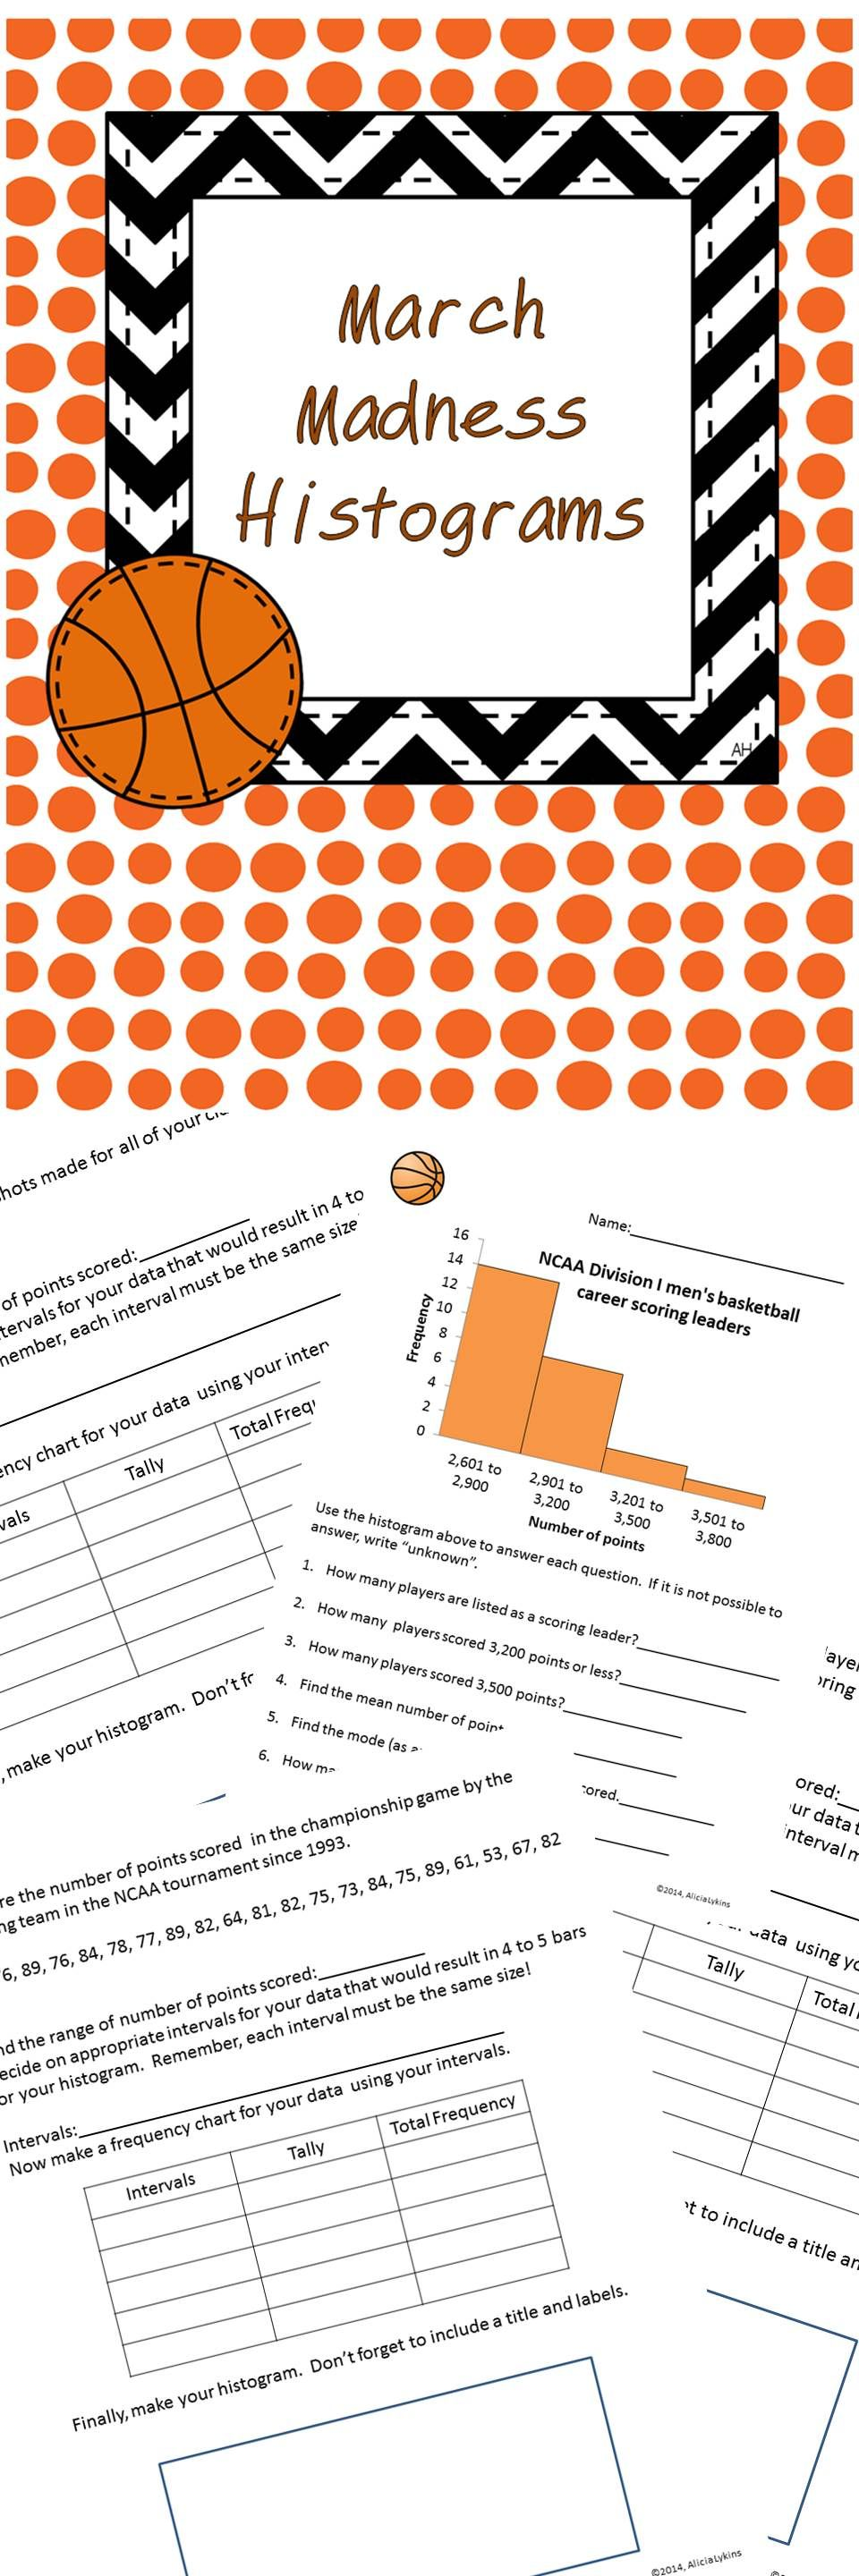 March Madness Basketball Histograms Math For Sixth Grade